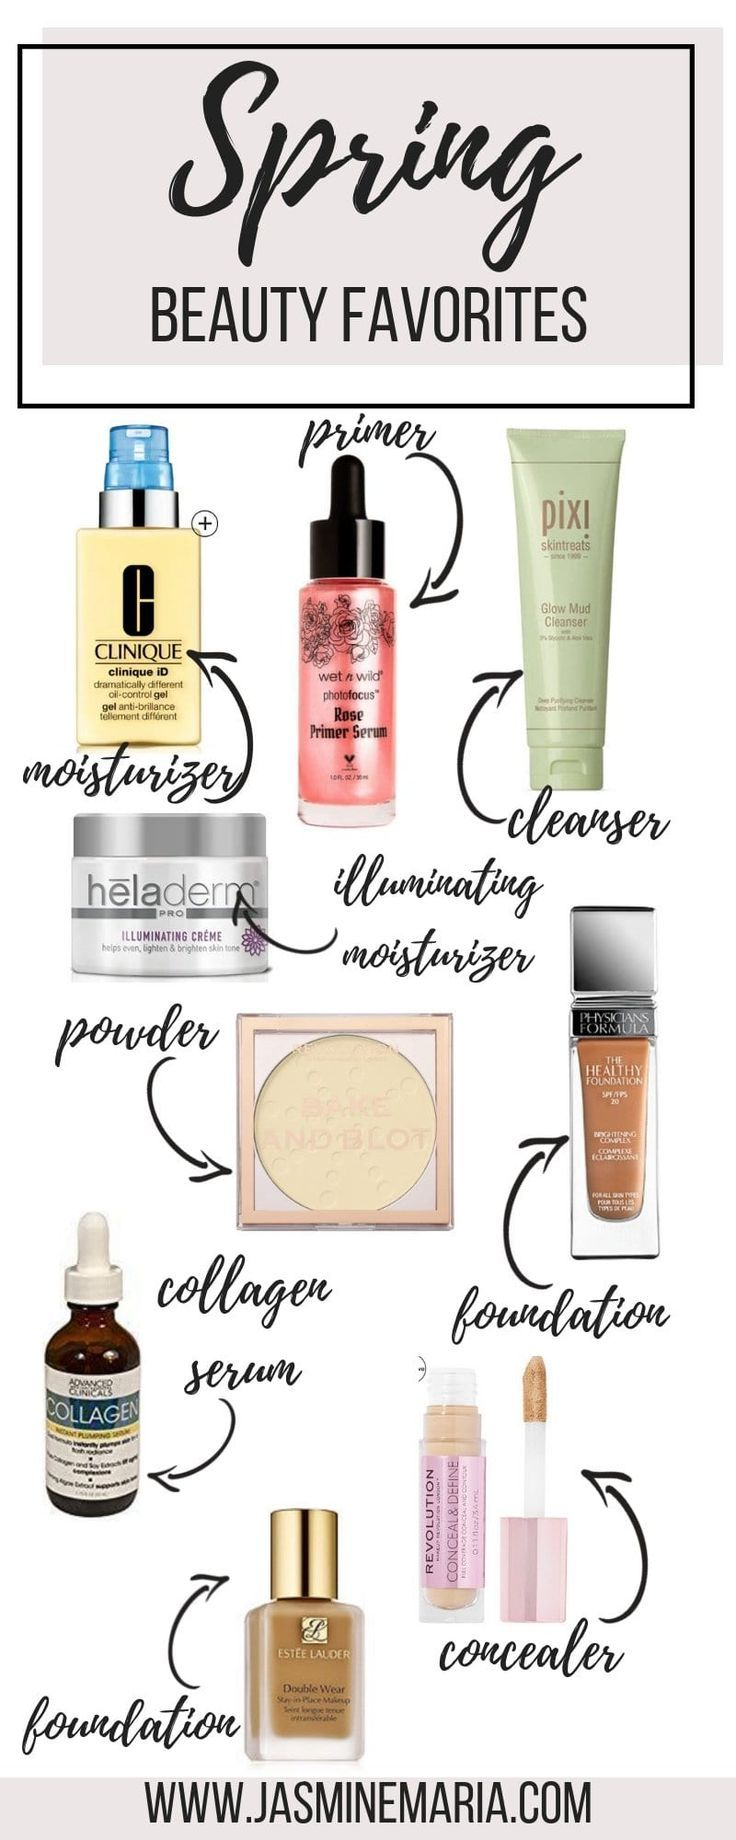 Spring Beauty Favorites #springbeauty #springskincare #springfavorites #springbeautyfavorites #skincareroutine #makeuproutine